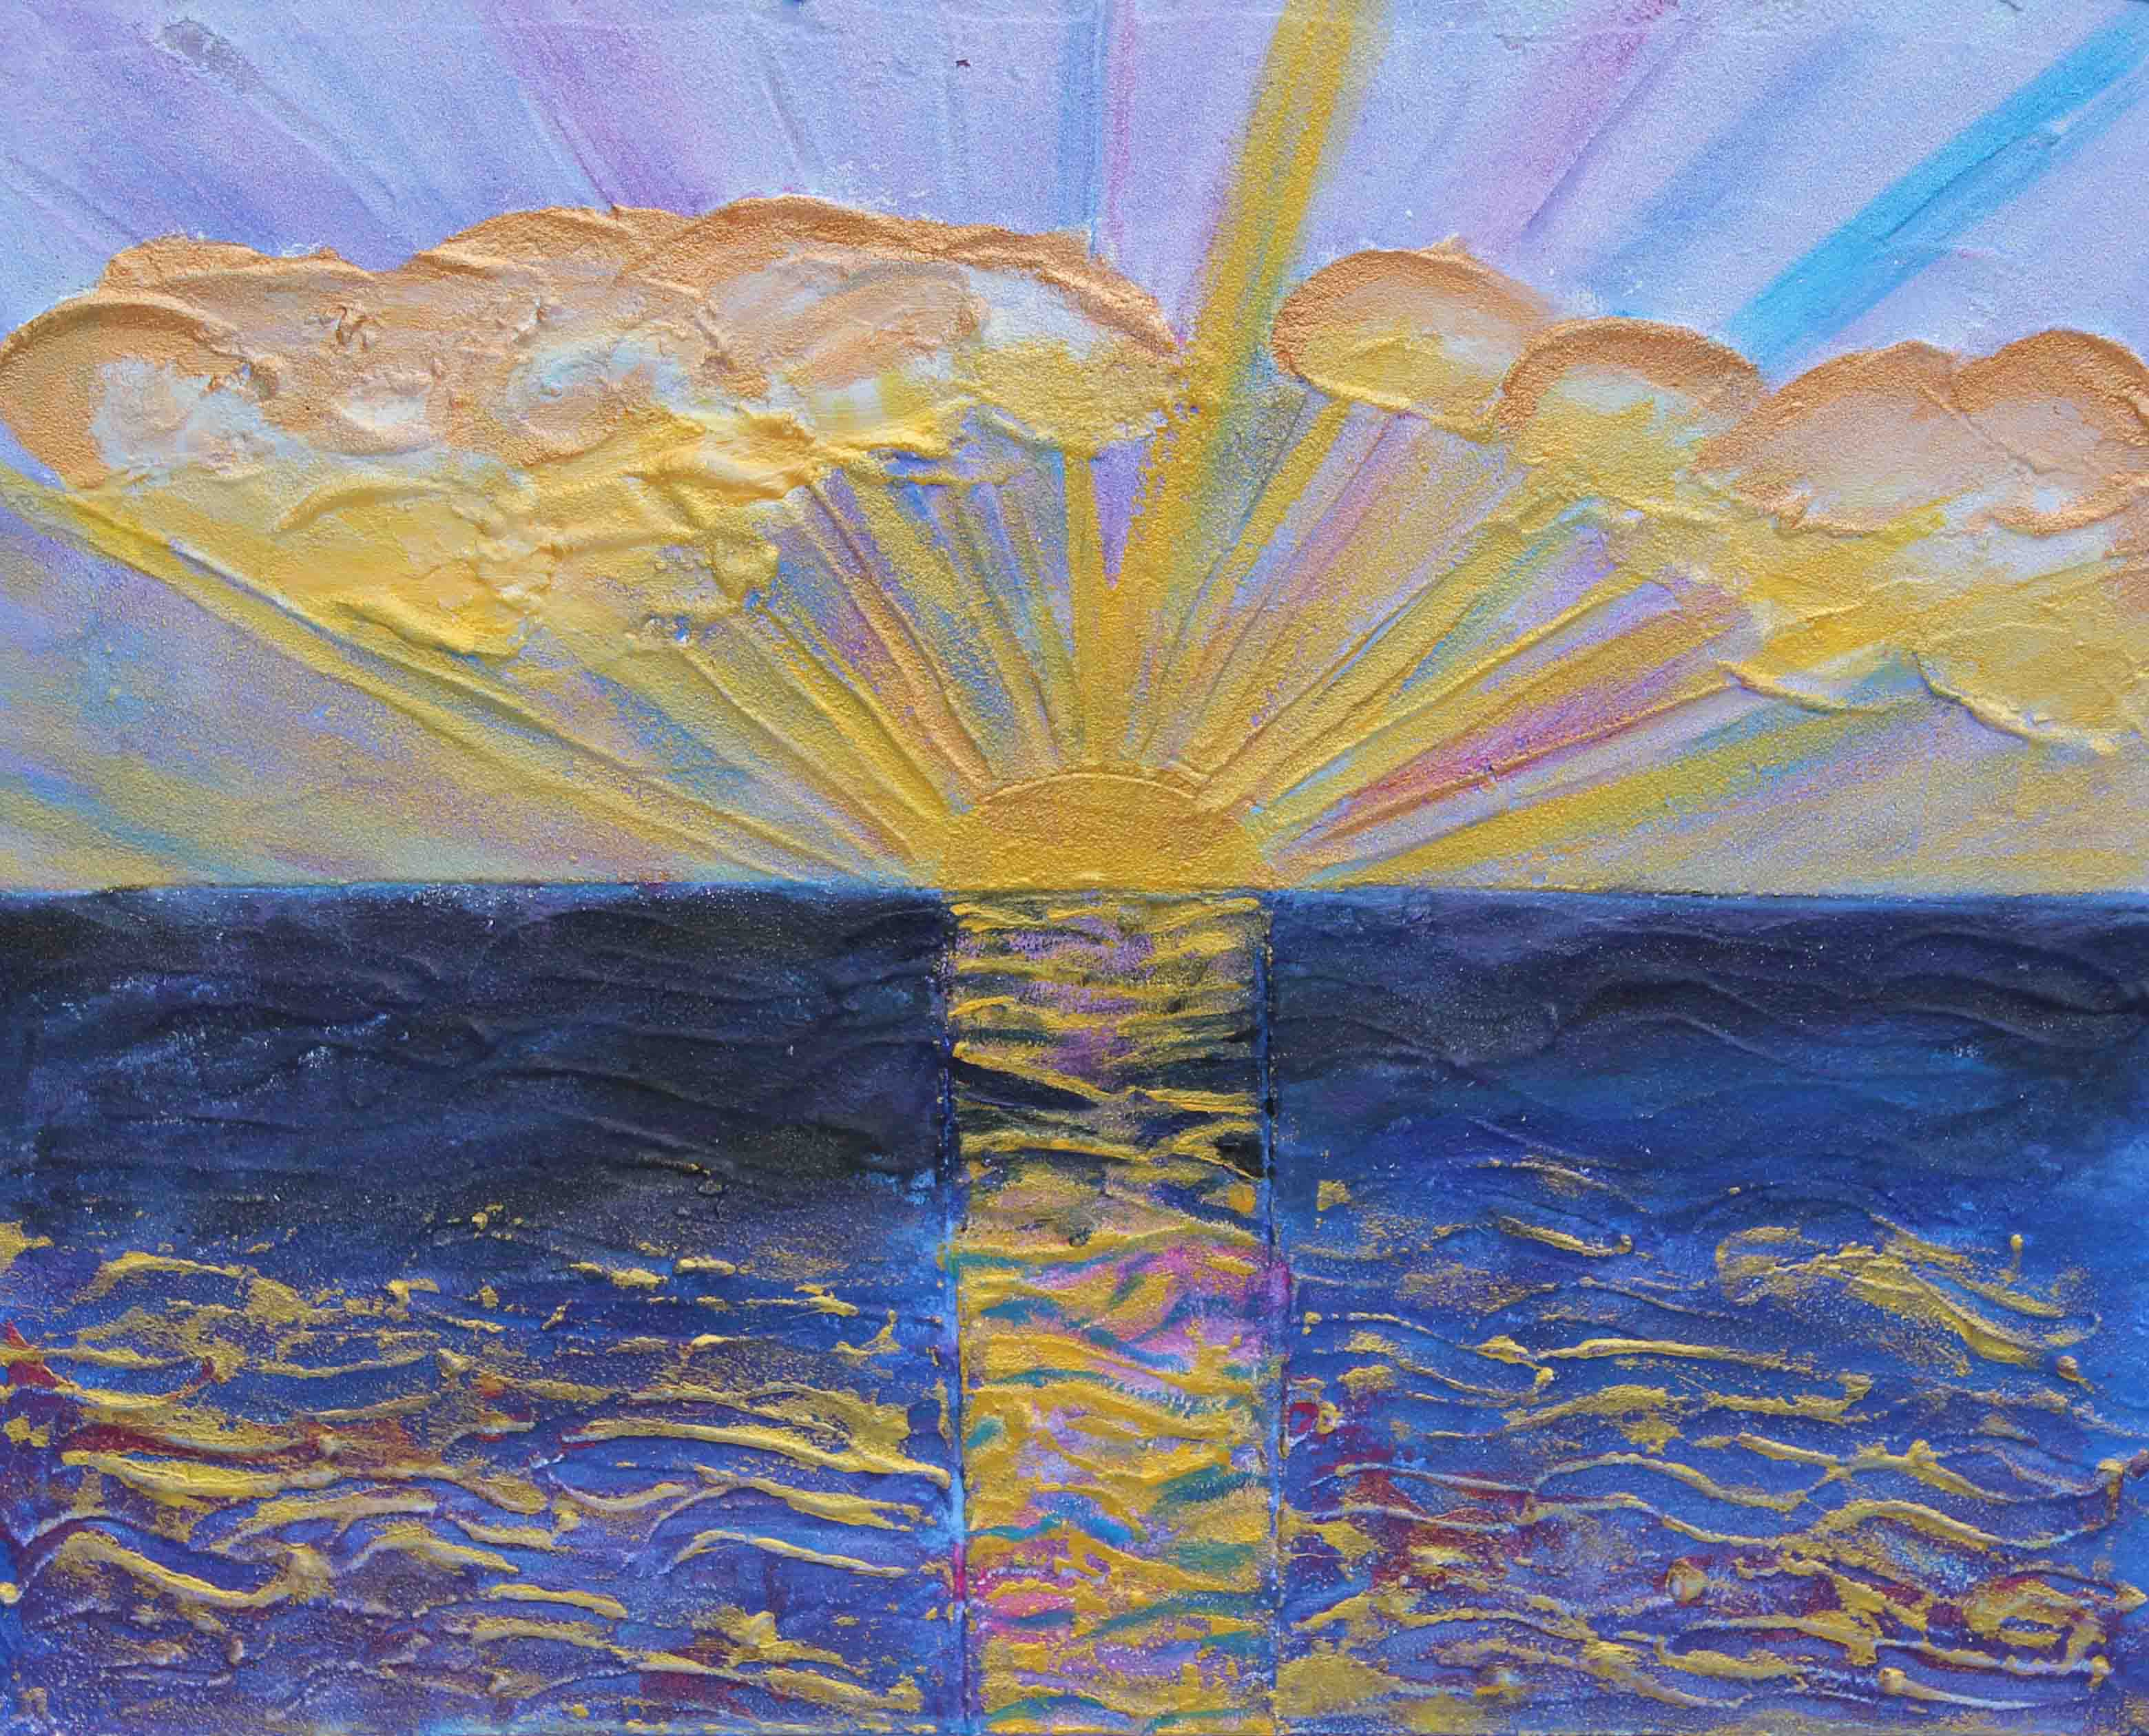 The Suns Rays Hit the Clouds Acrylic on Board by Luke McEwen